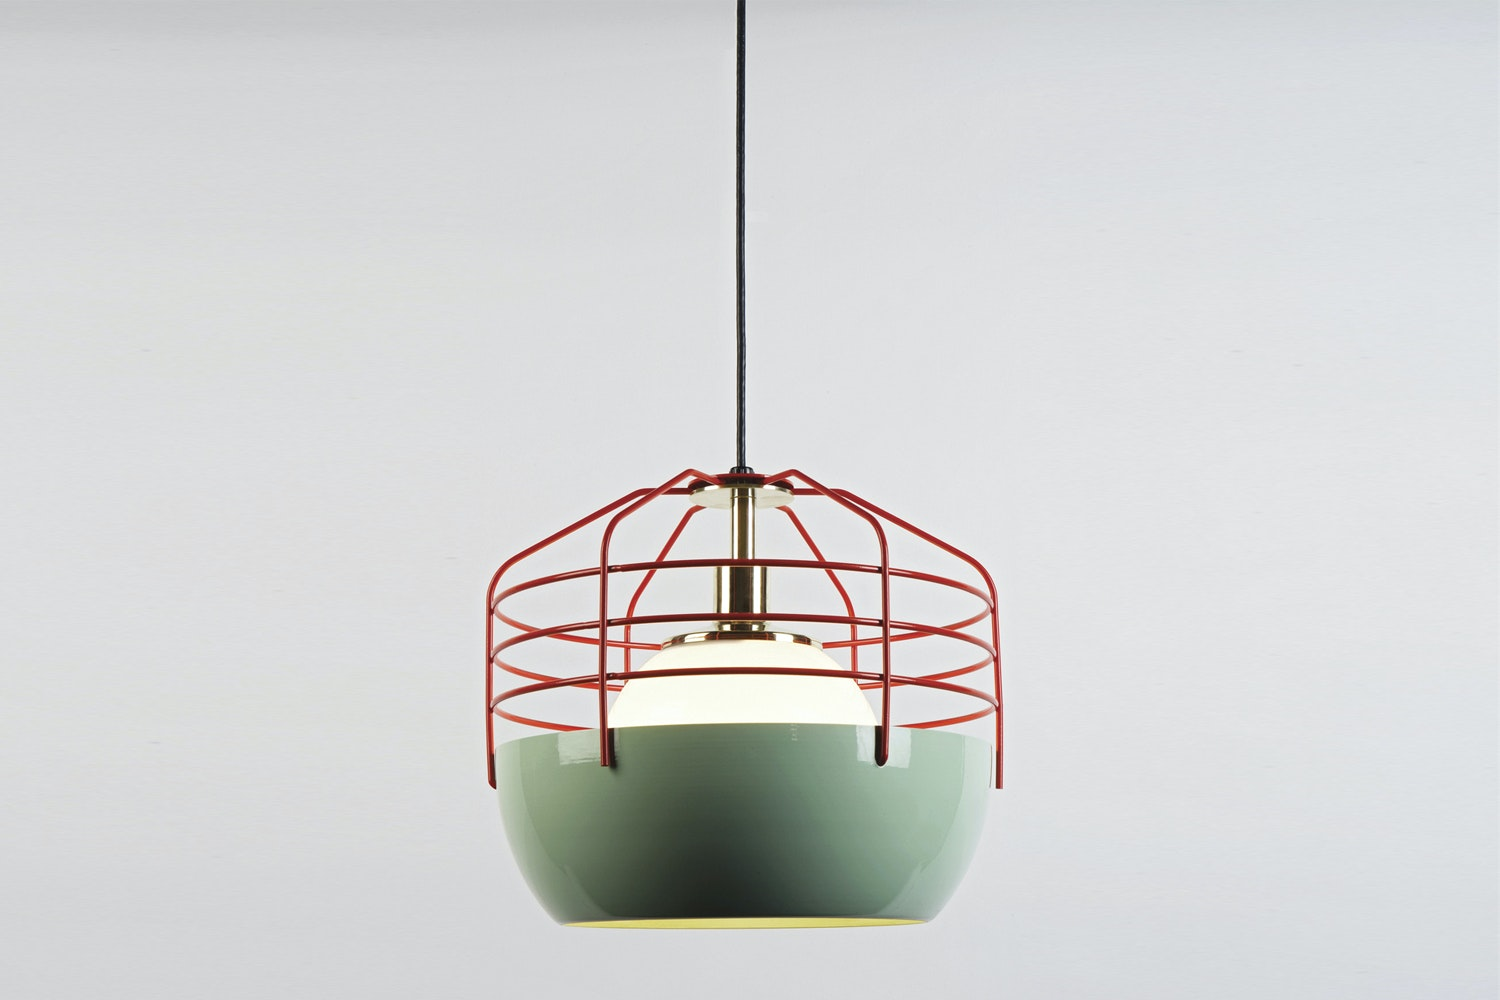 Bluff City Large Suspension Lamp by Jonah Takagi for Roll & Hill